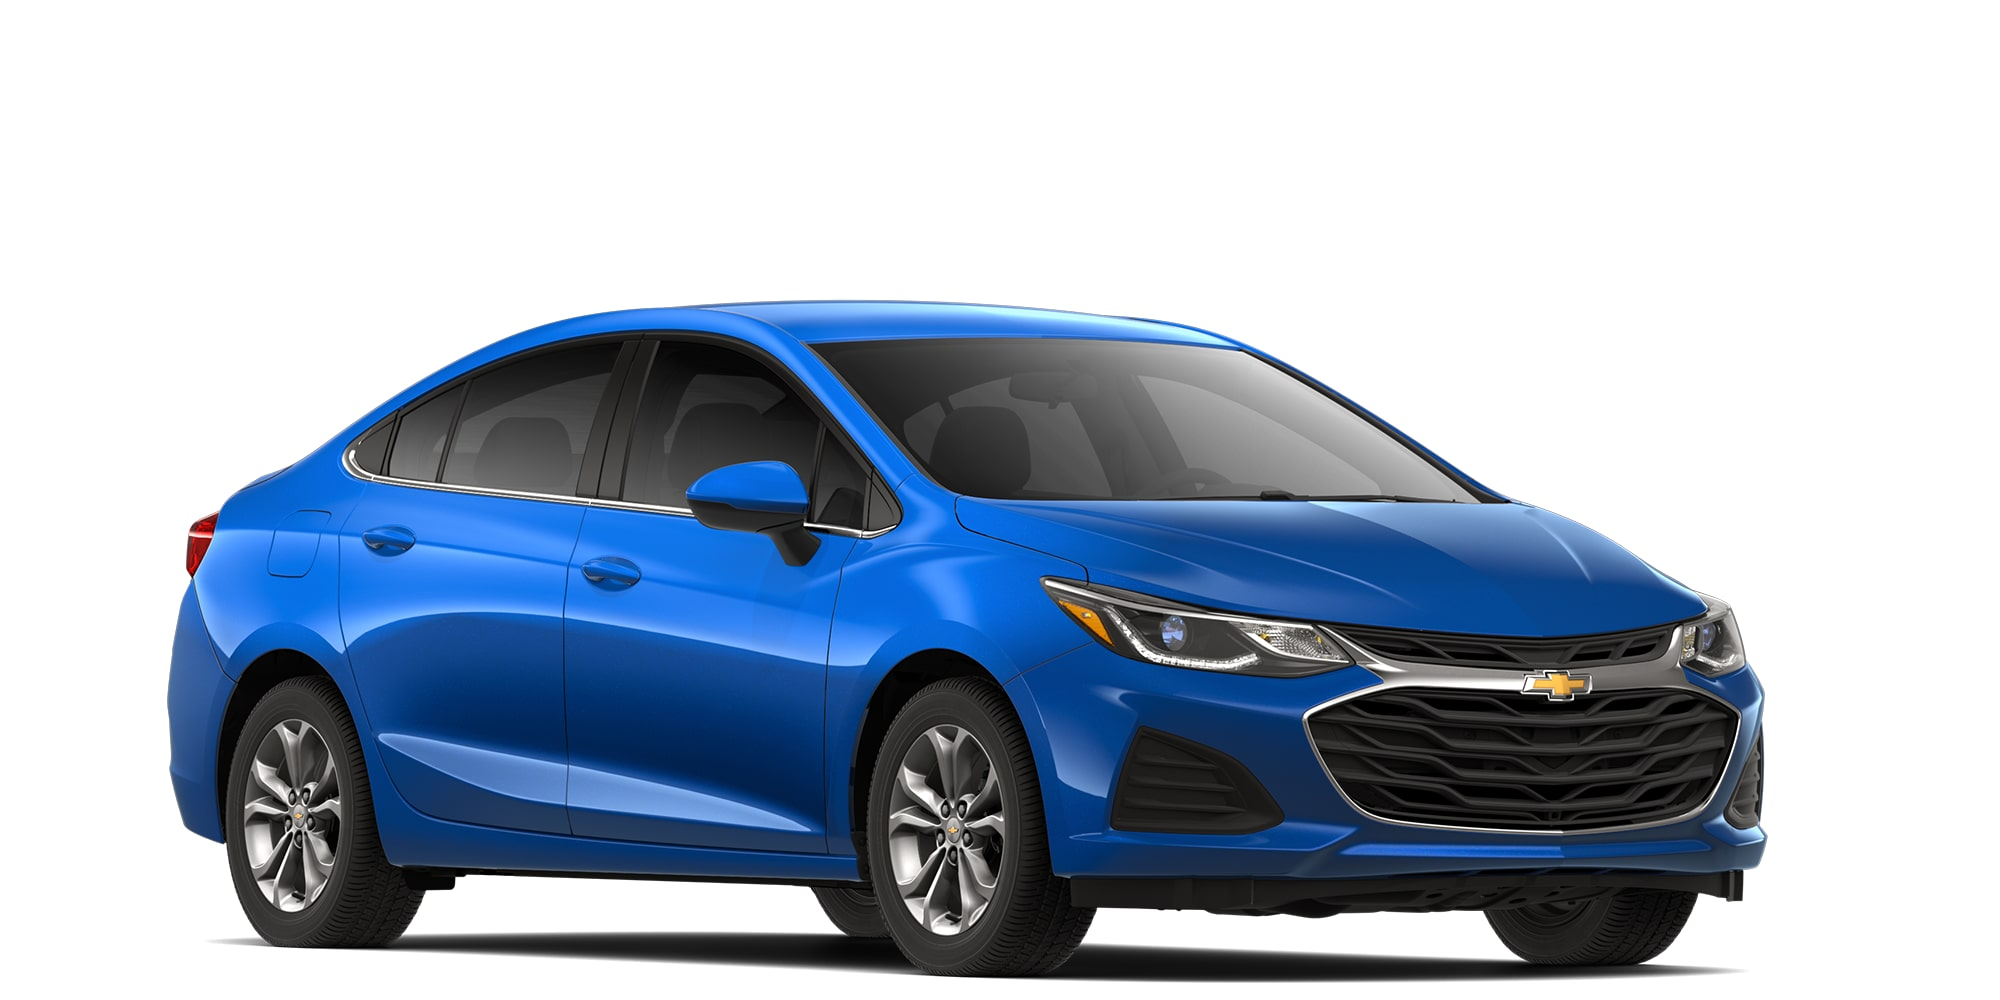 Chevrolet Cruze Owners Manual: Service